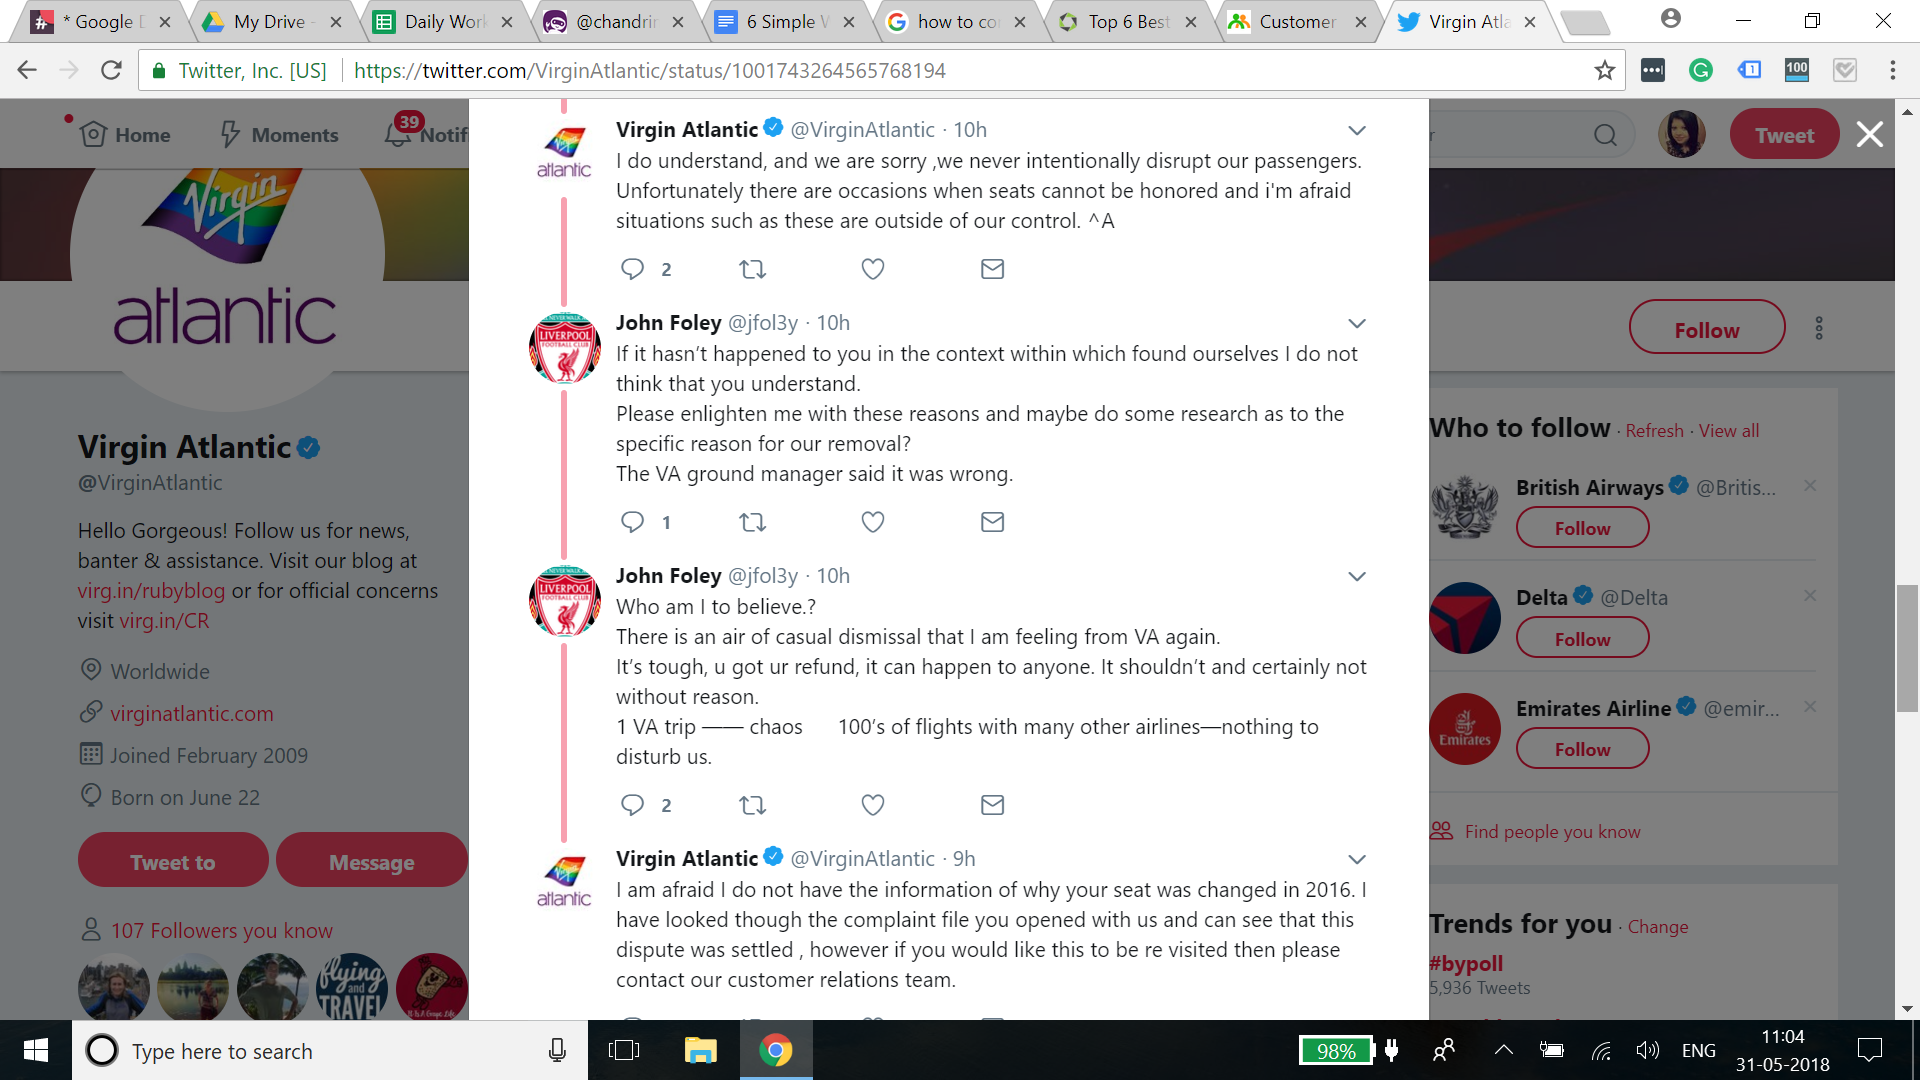 virgin atlantic twitter communication